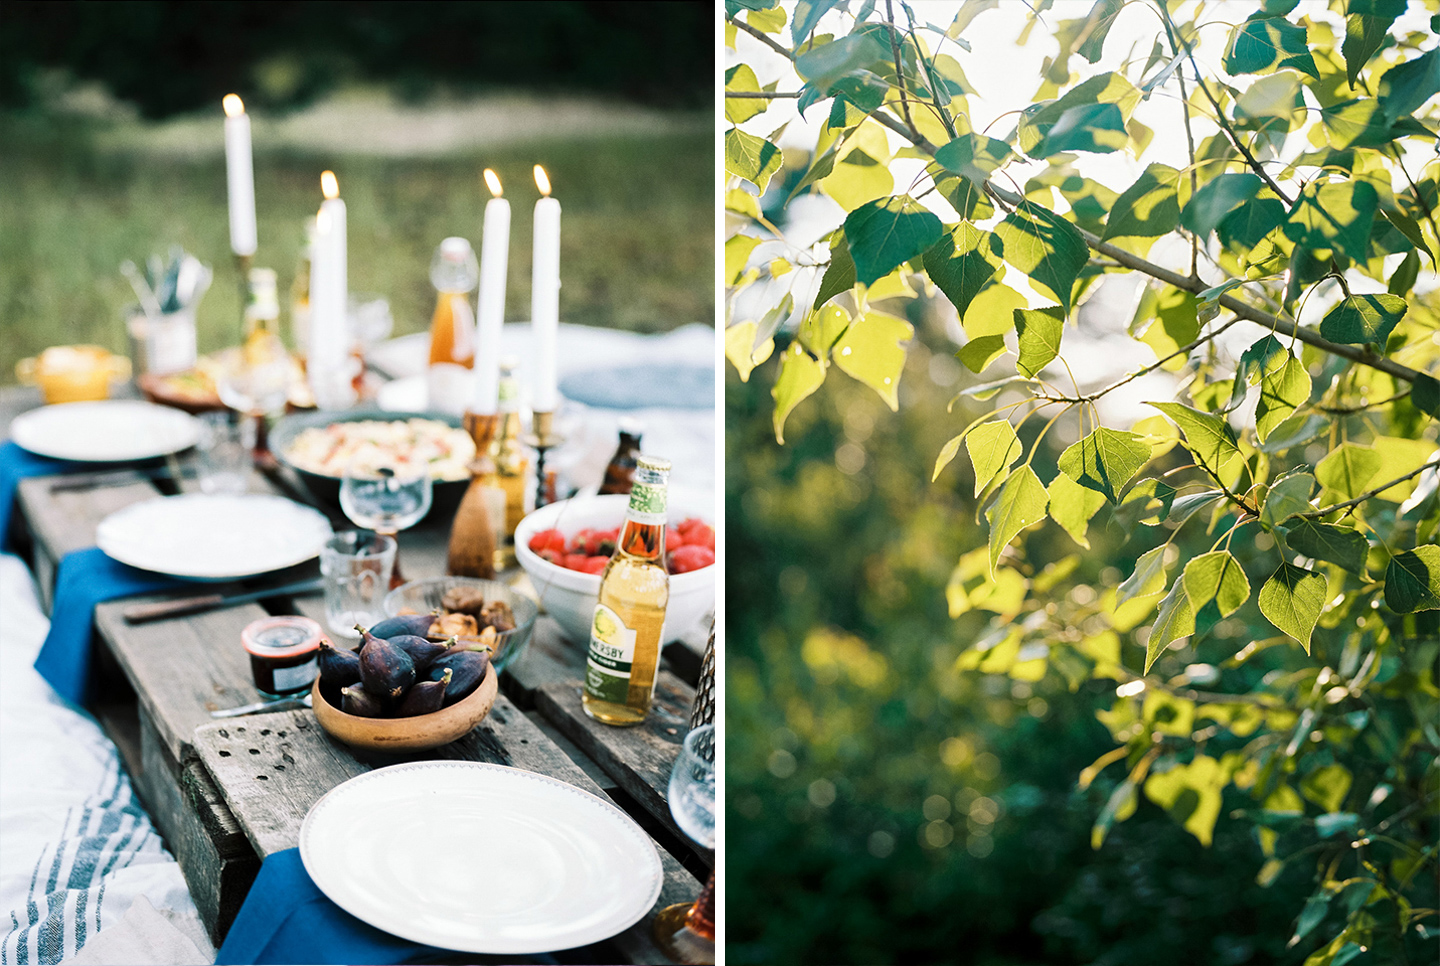 forest-picnic-with-friends-inspire-styling-hanke-arkenbout-photography-78a.jpg